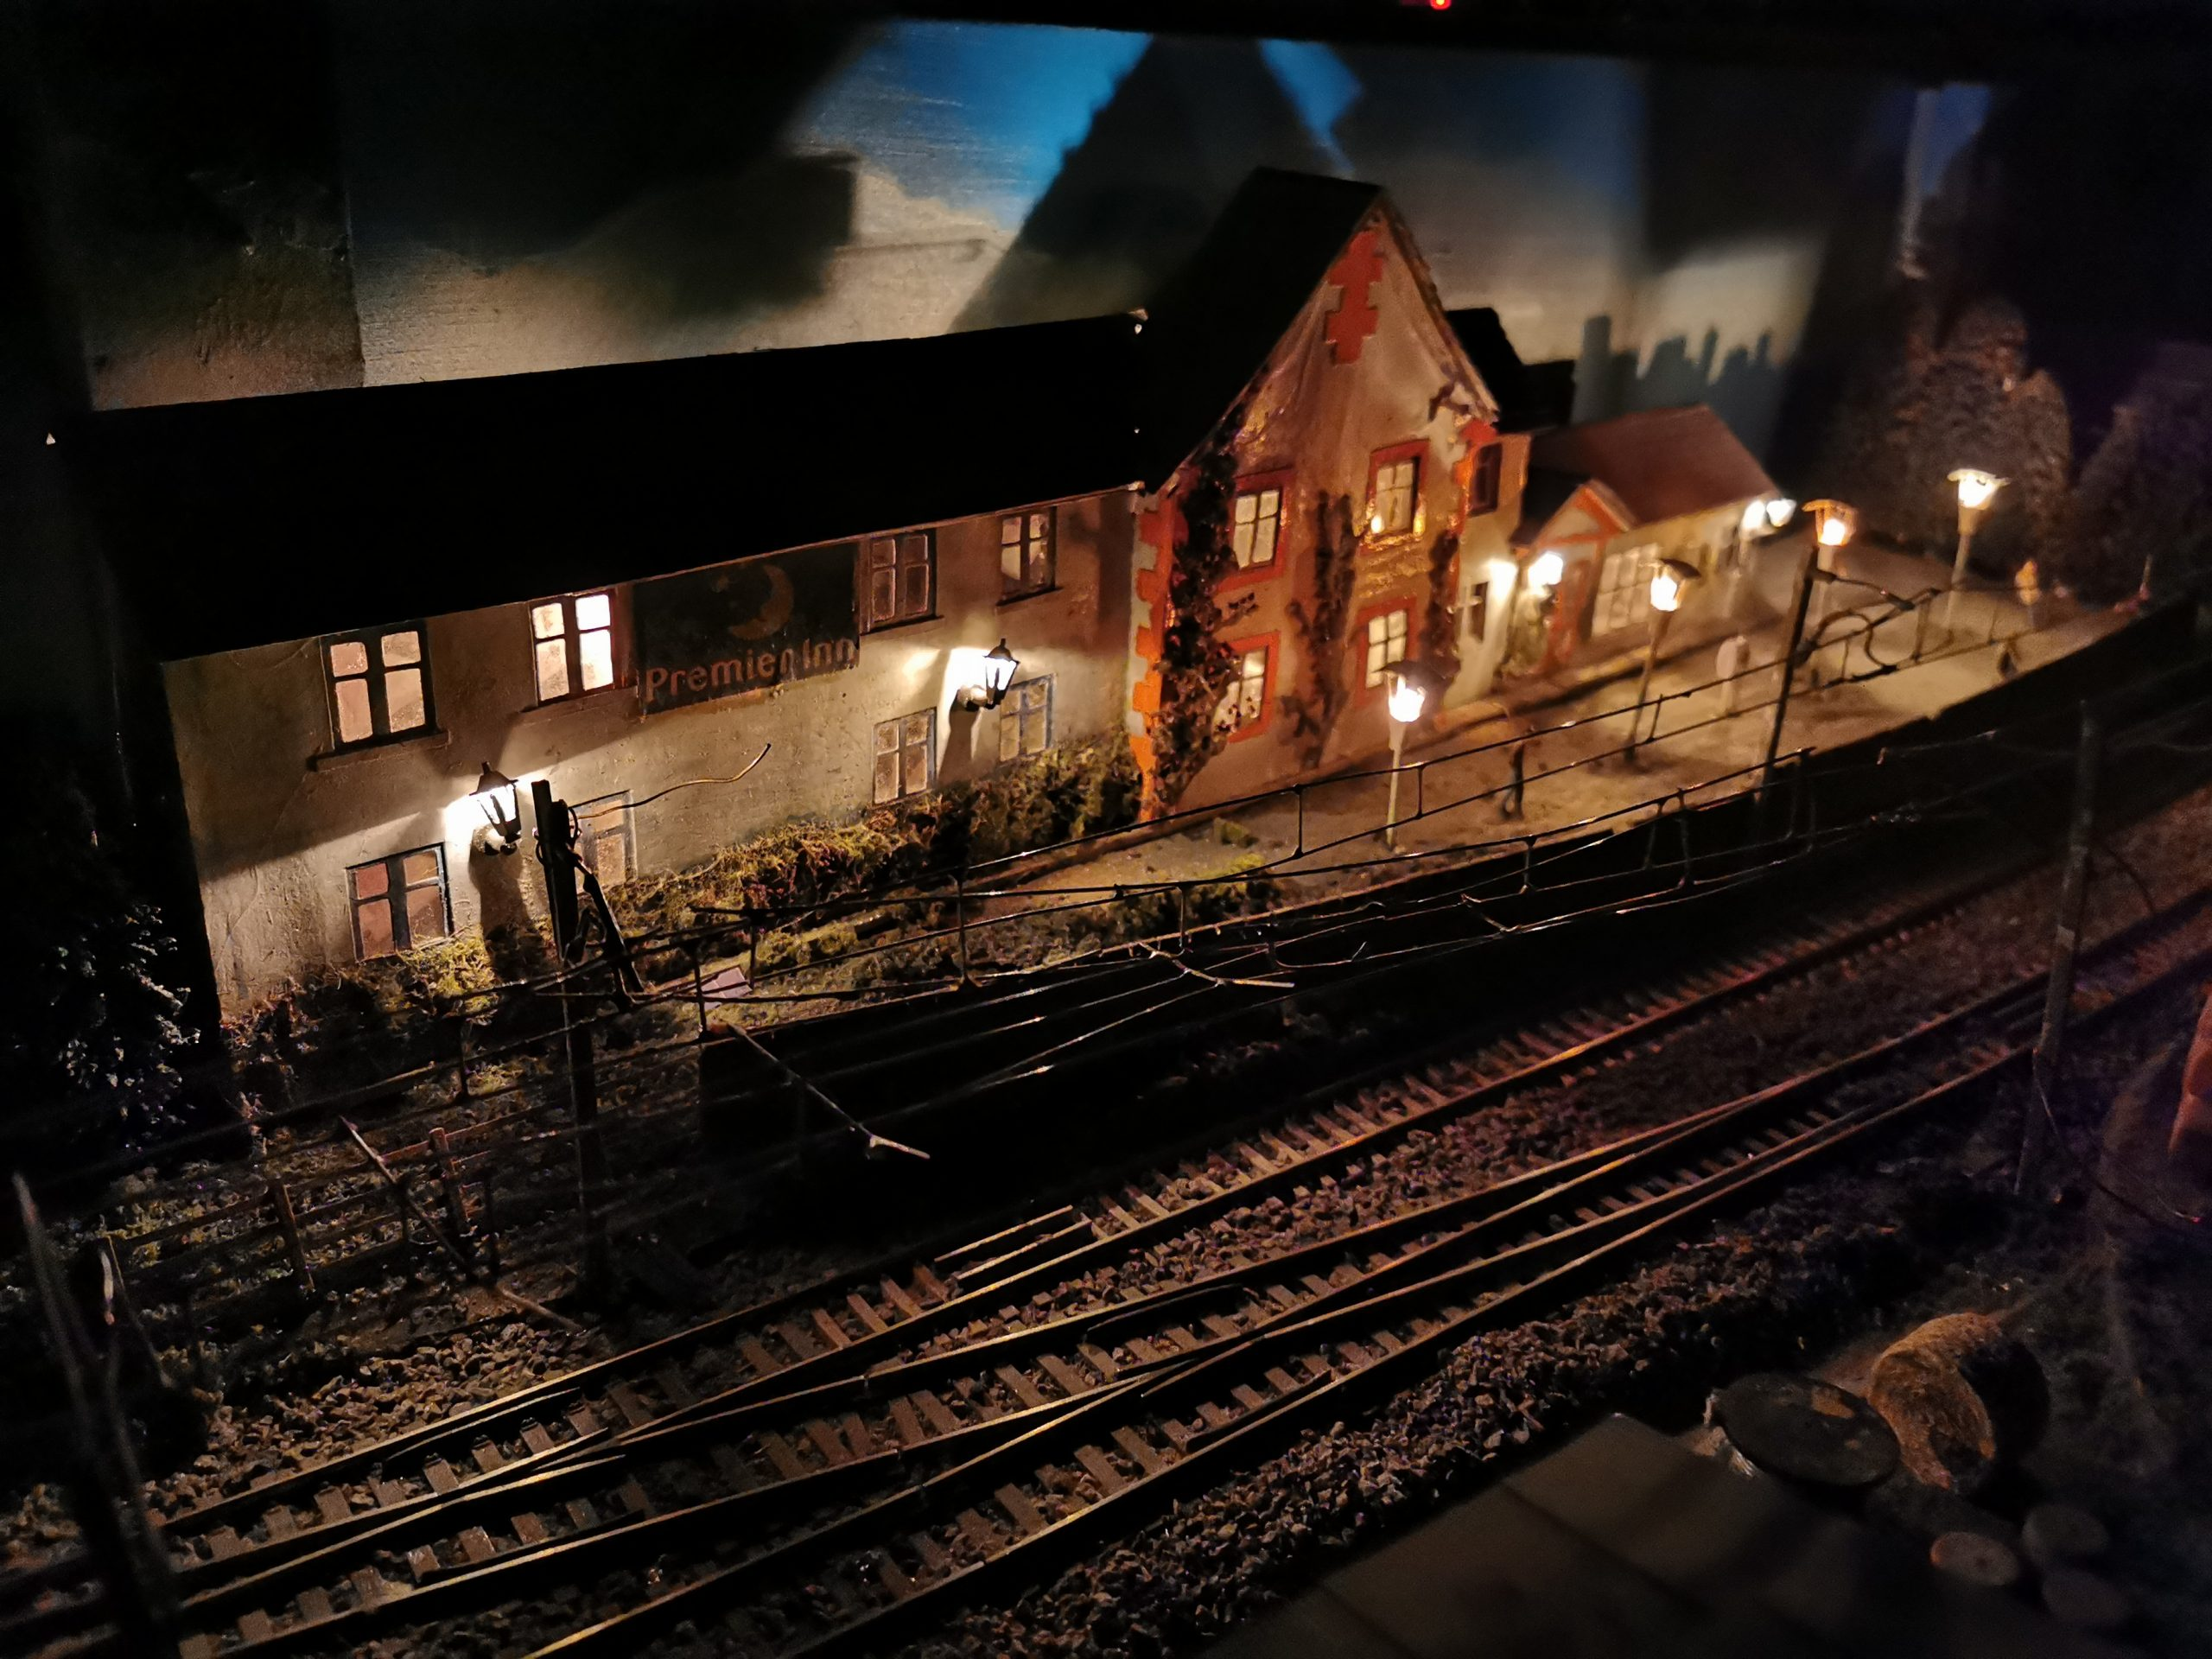 Clydeside Model Railway Club layout at night